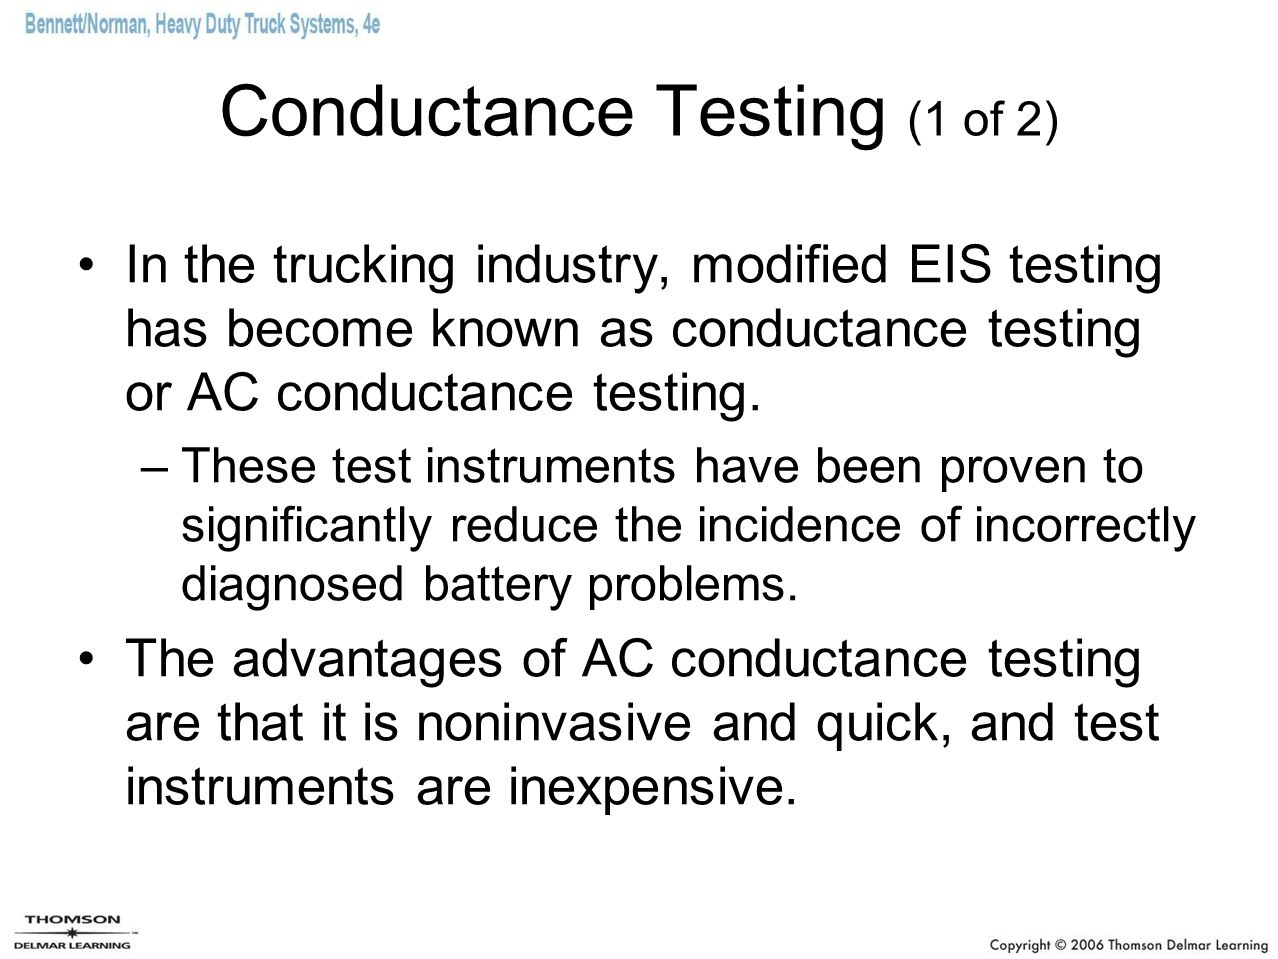 Conductance Testing (1 of 2)